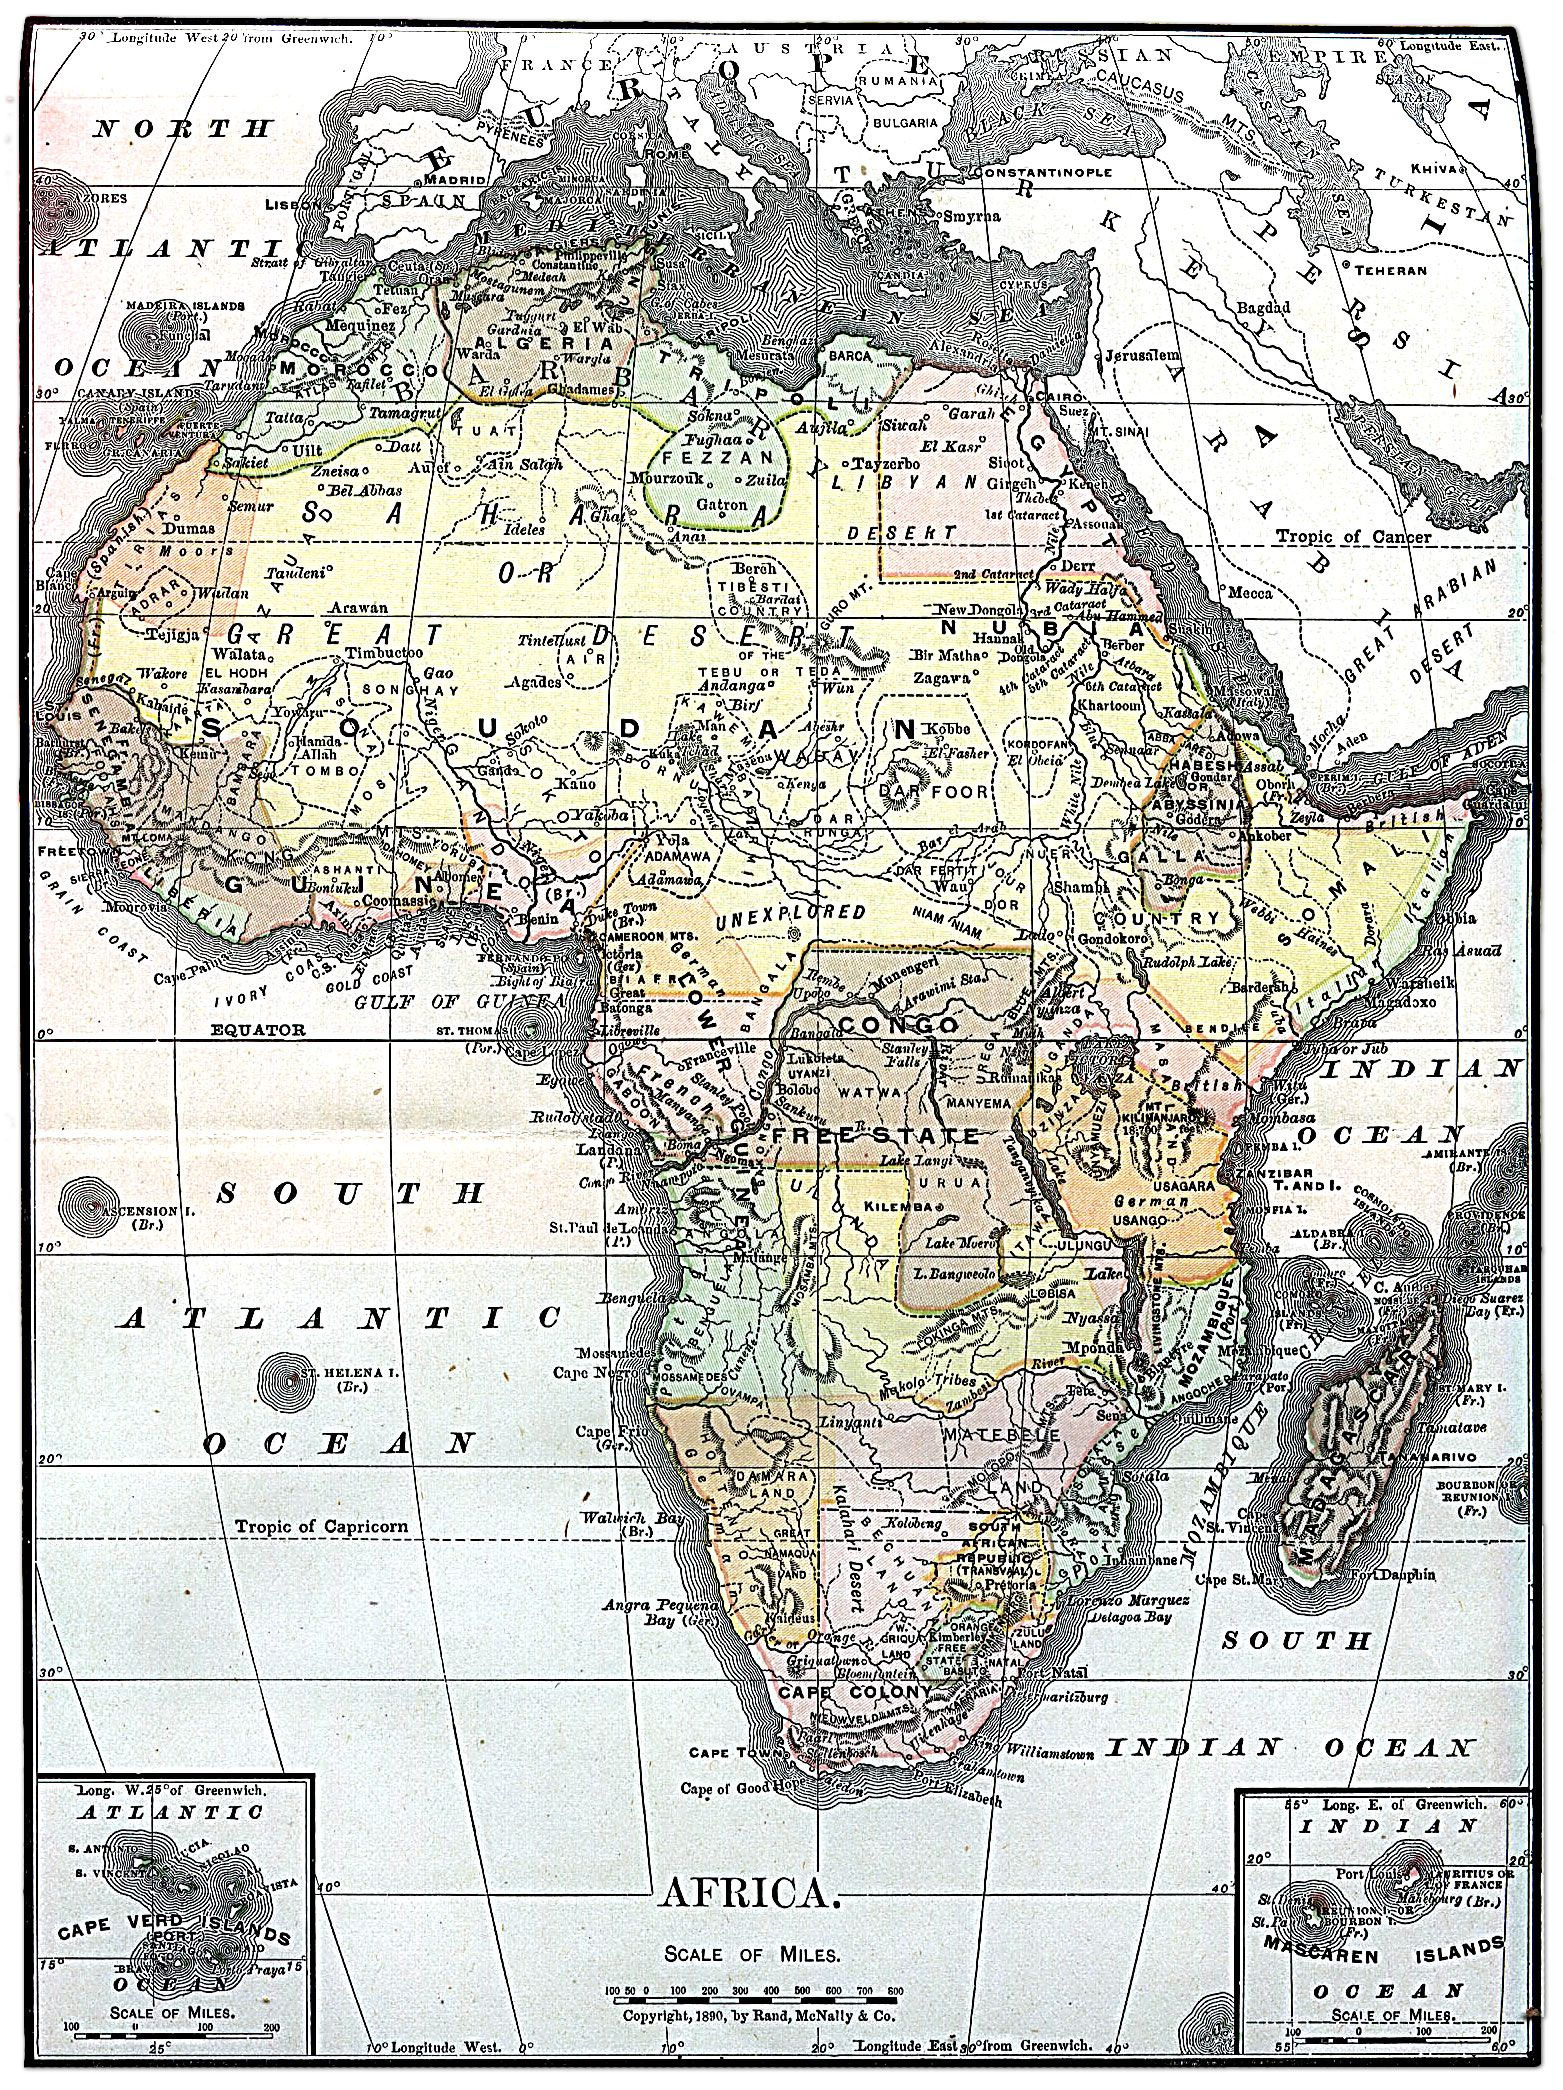 Map Of Africa Nigeria.Africa Map 1890 Showing Biafra To The East Of Nigeria In The